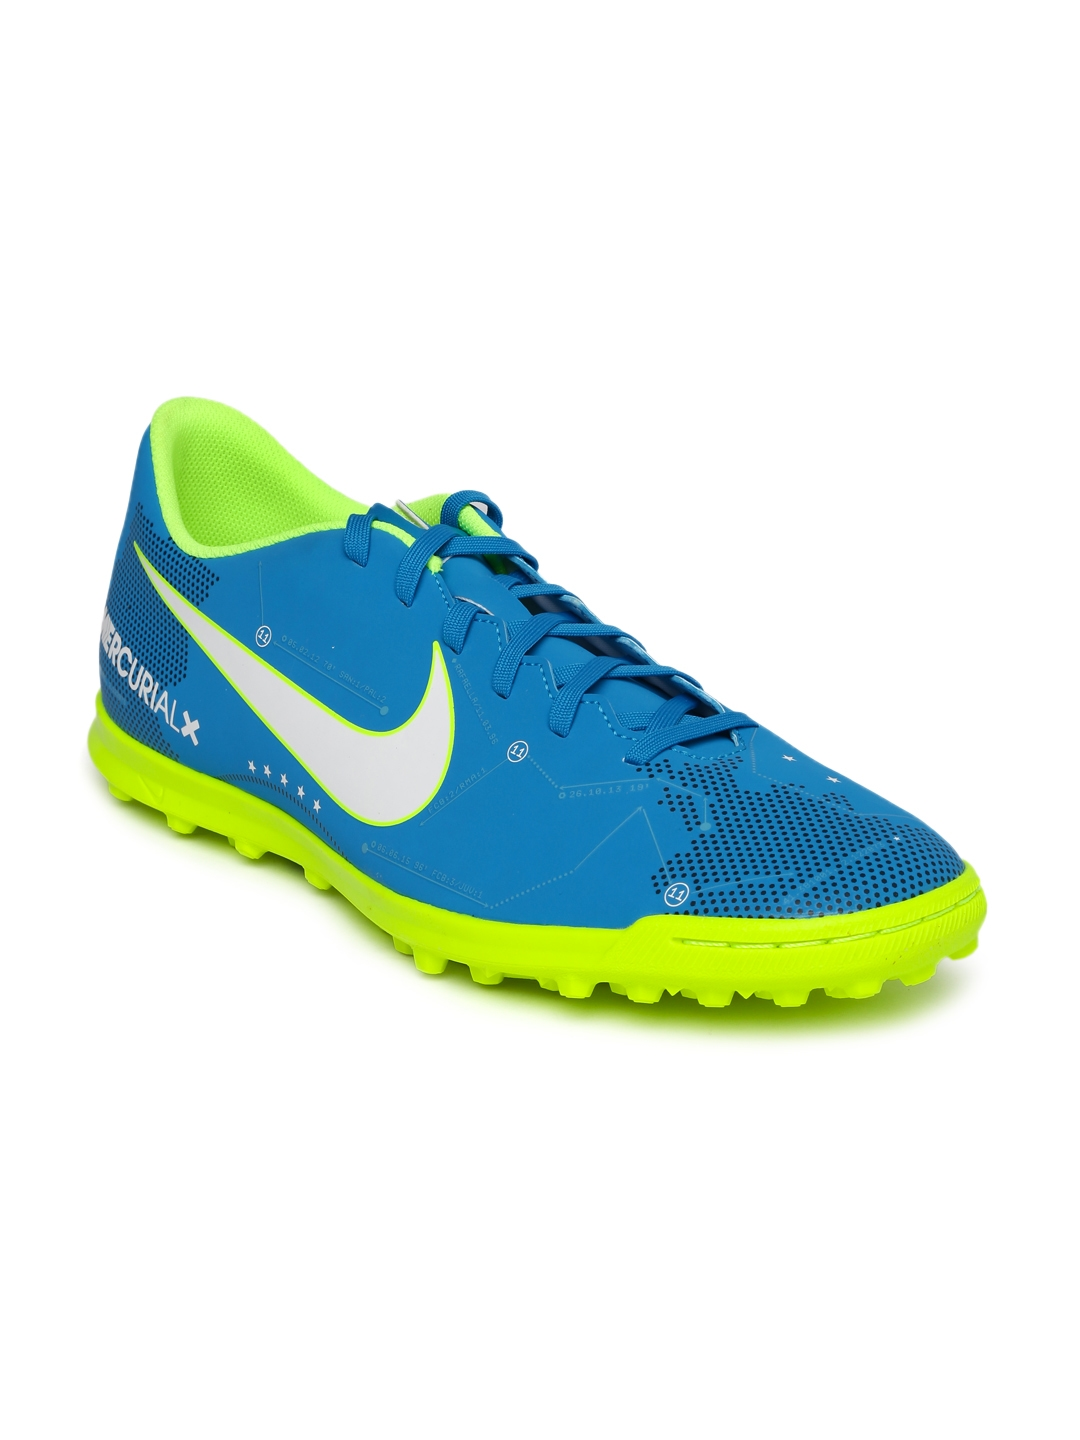 nike football shoes